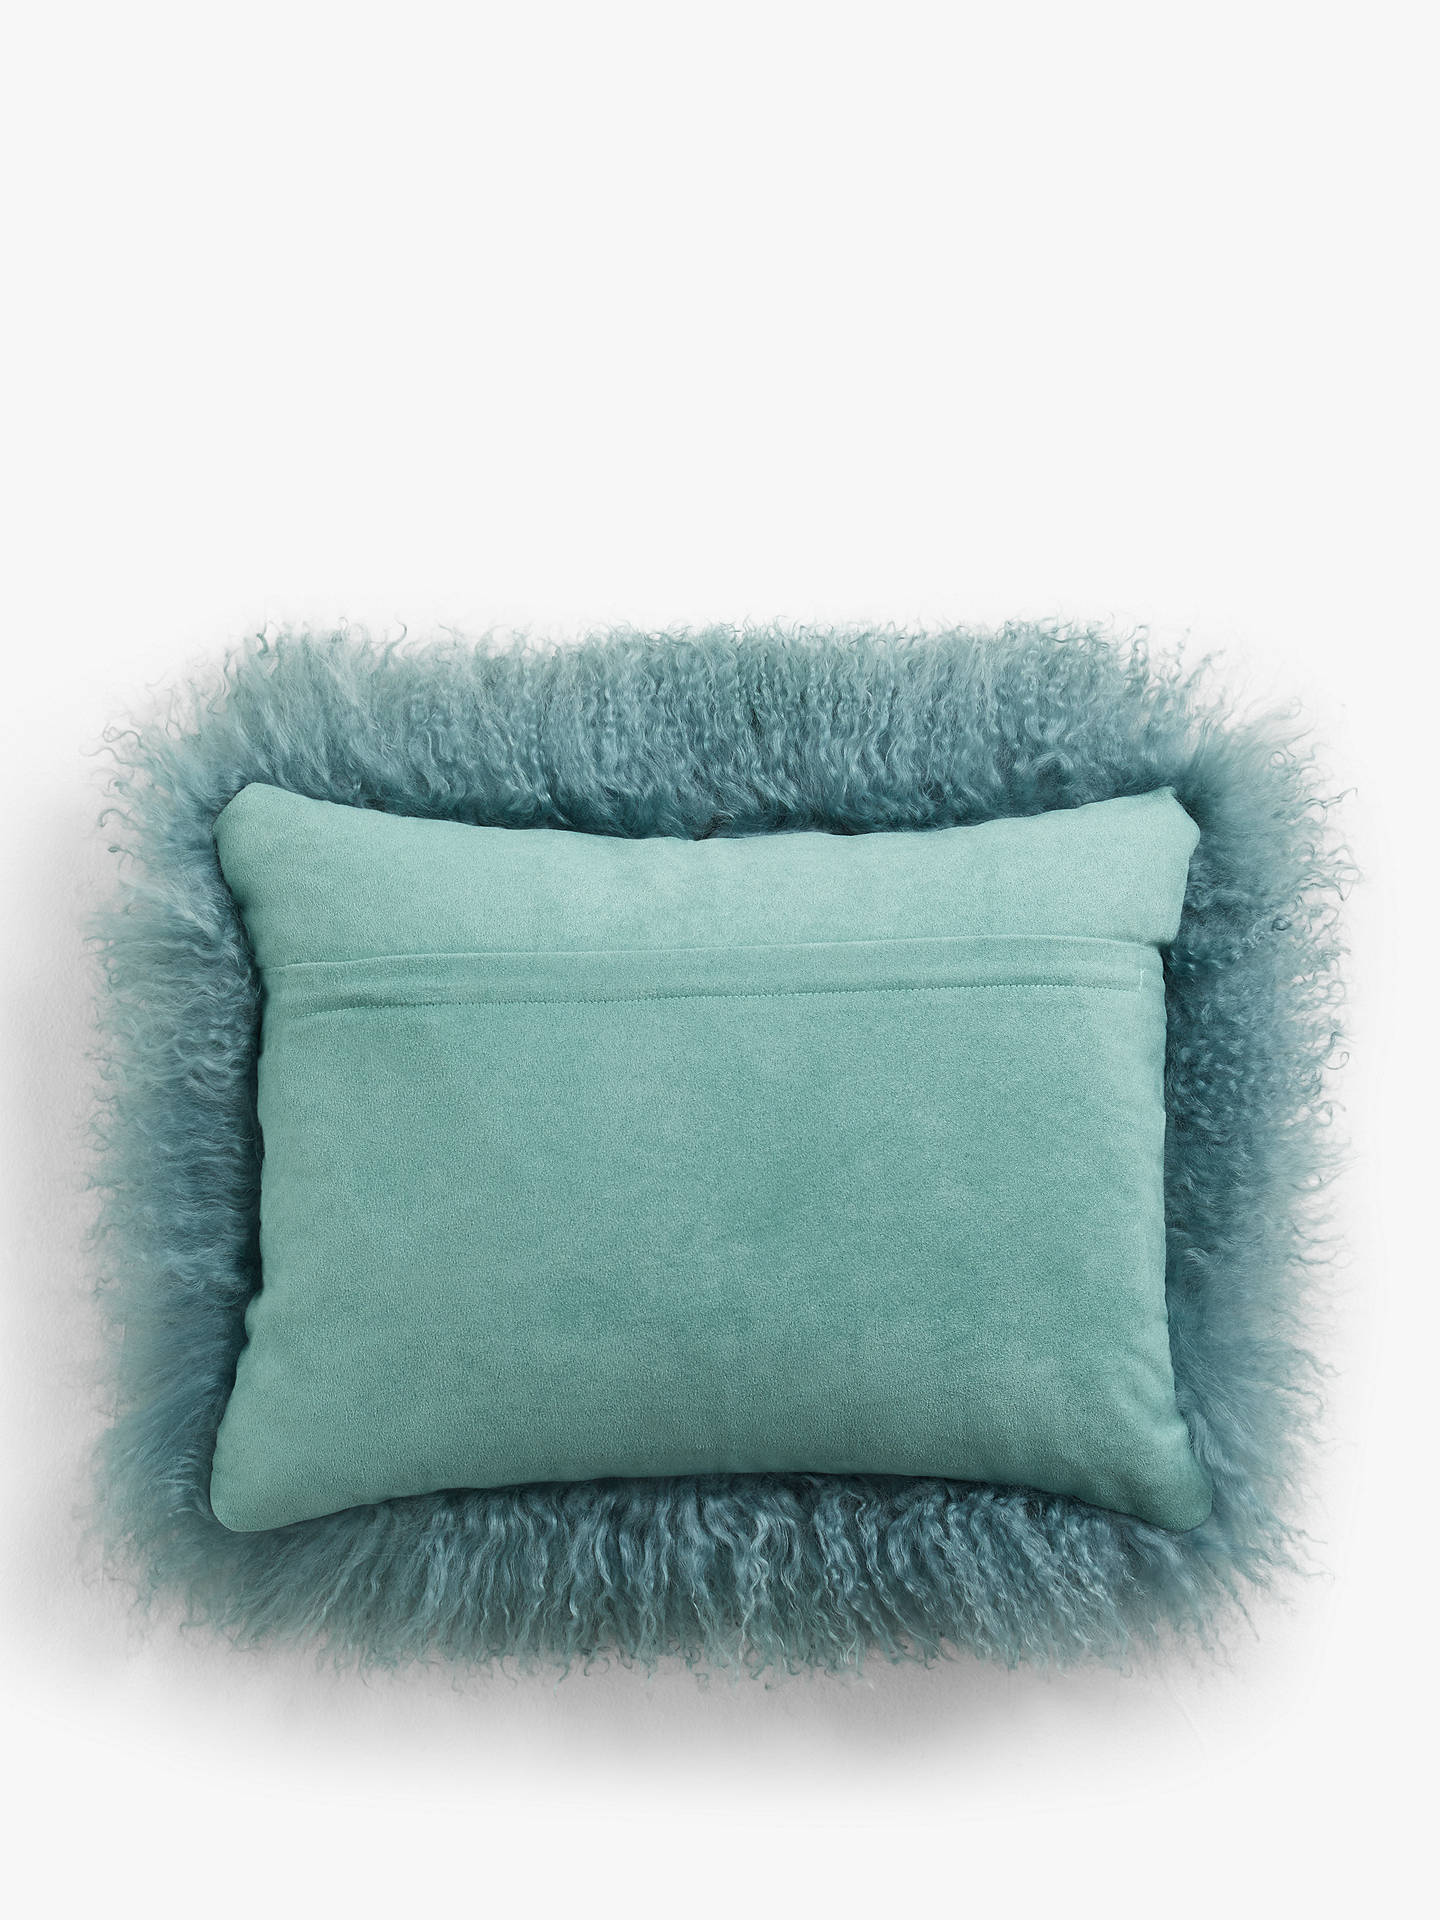 Buy John Lewis & Partners Mongolian Cushion, Soft Teal Online at johnlewis.com